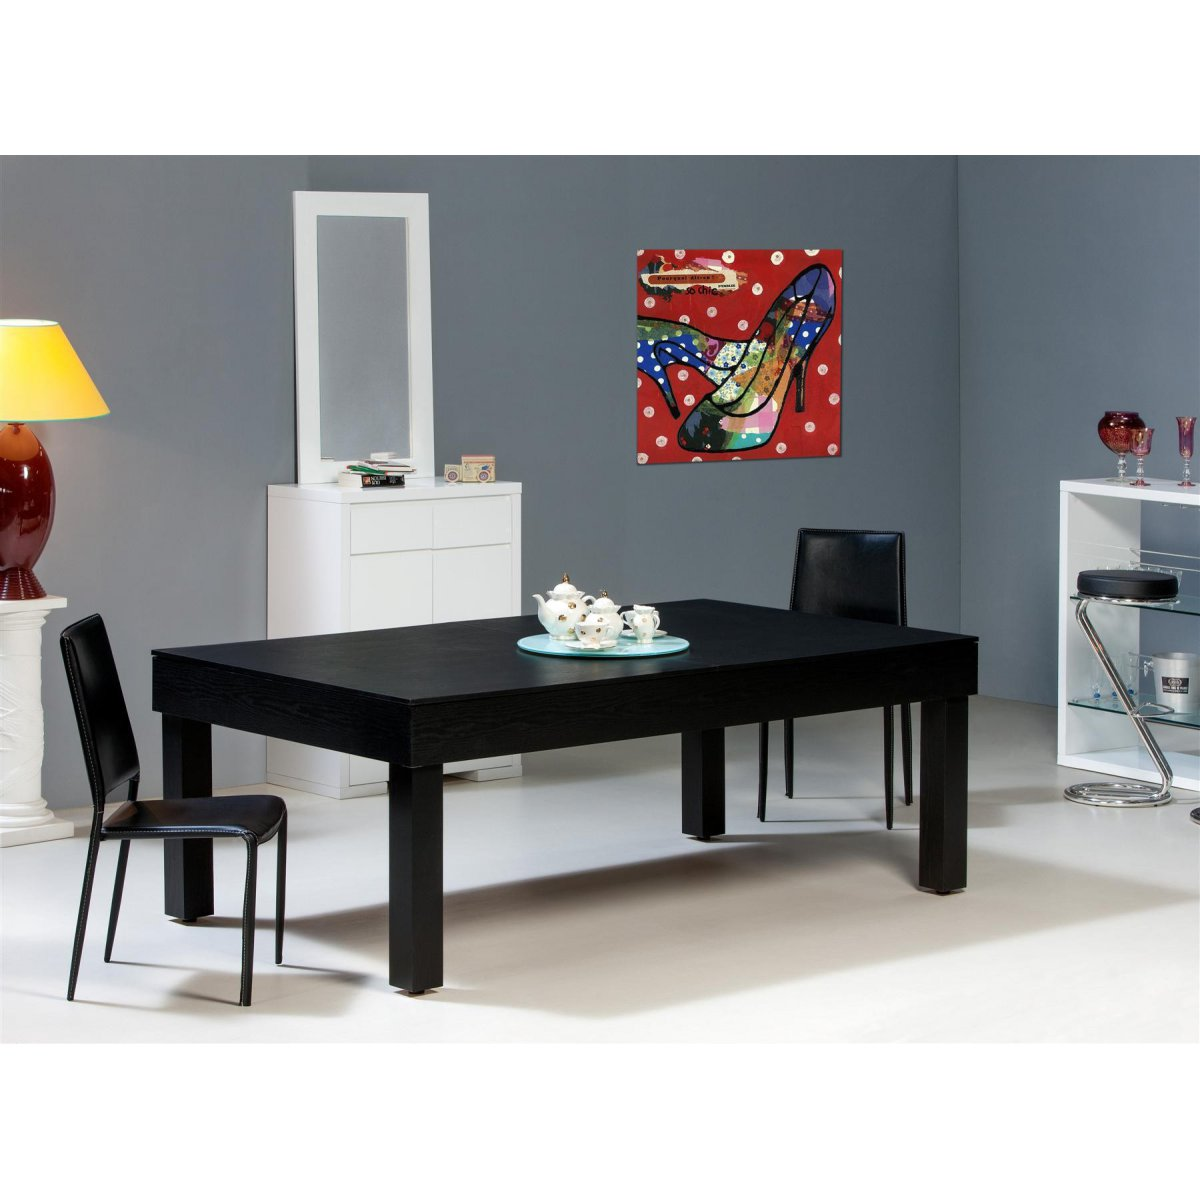 billard table americain billards de france. Black Bedroom Furniture Sets. Home Design Ideas